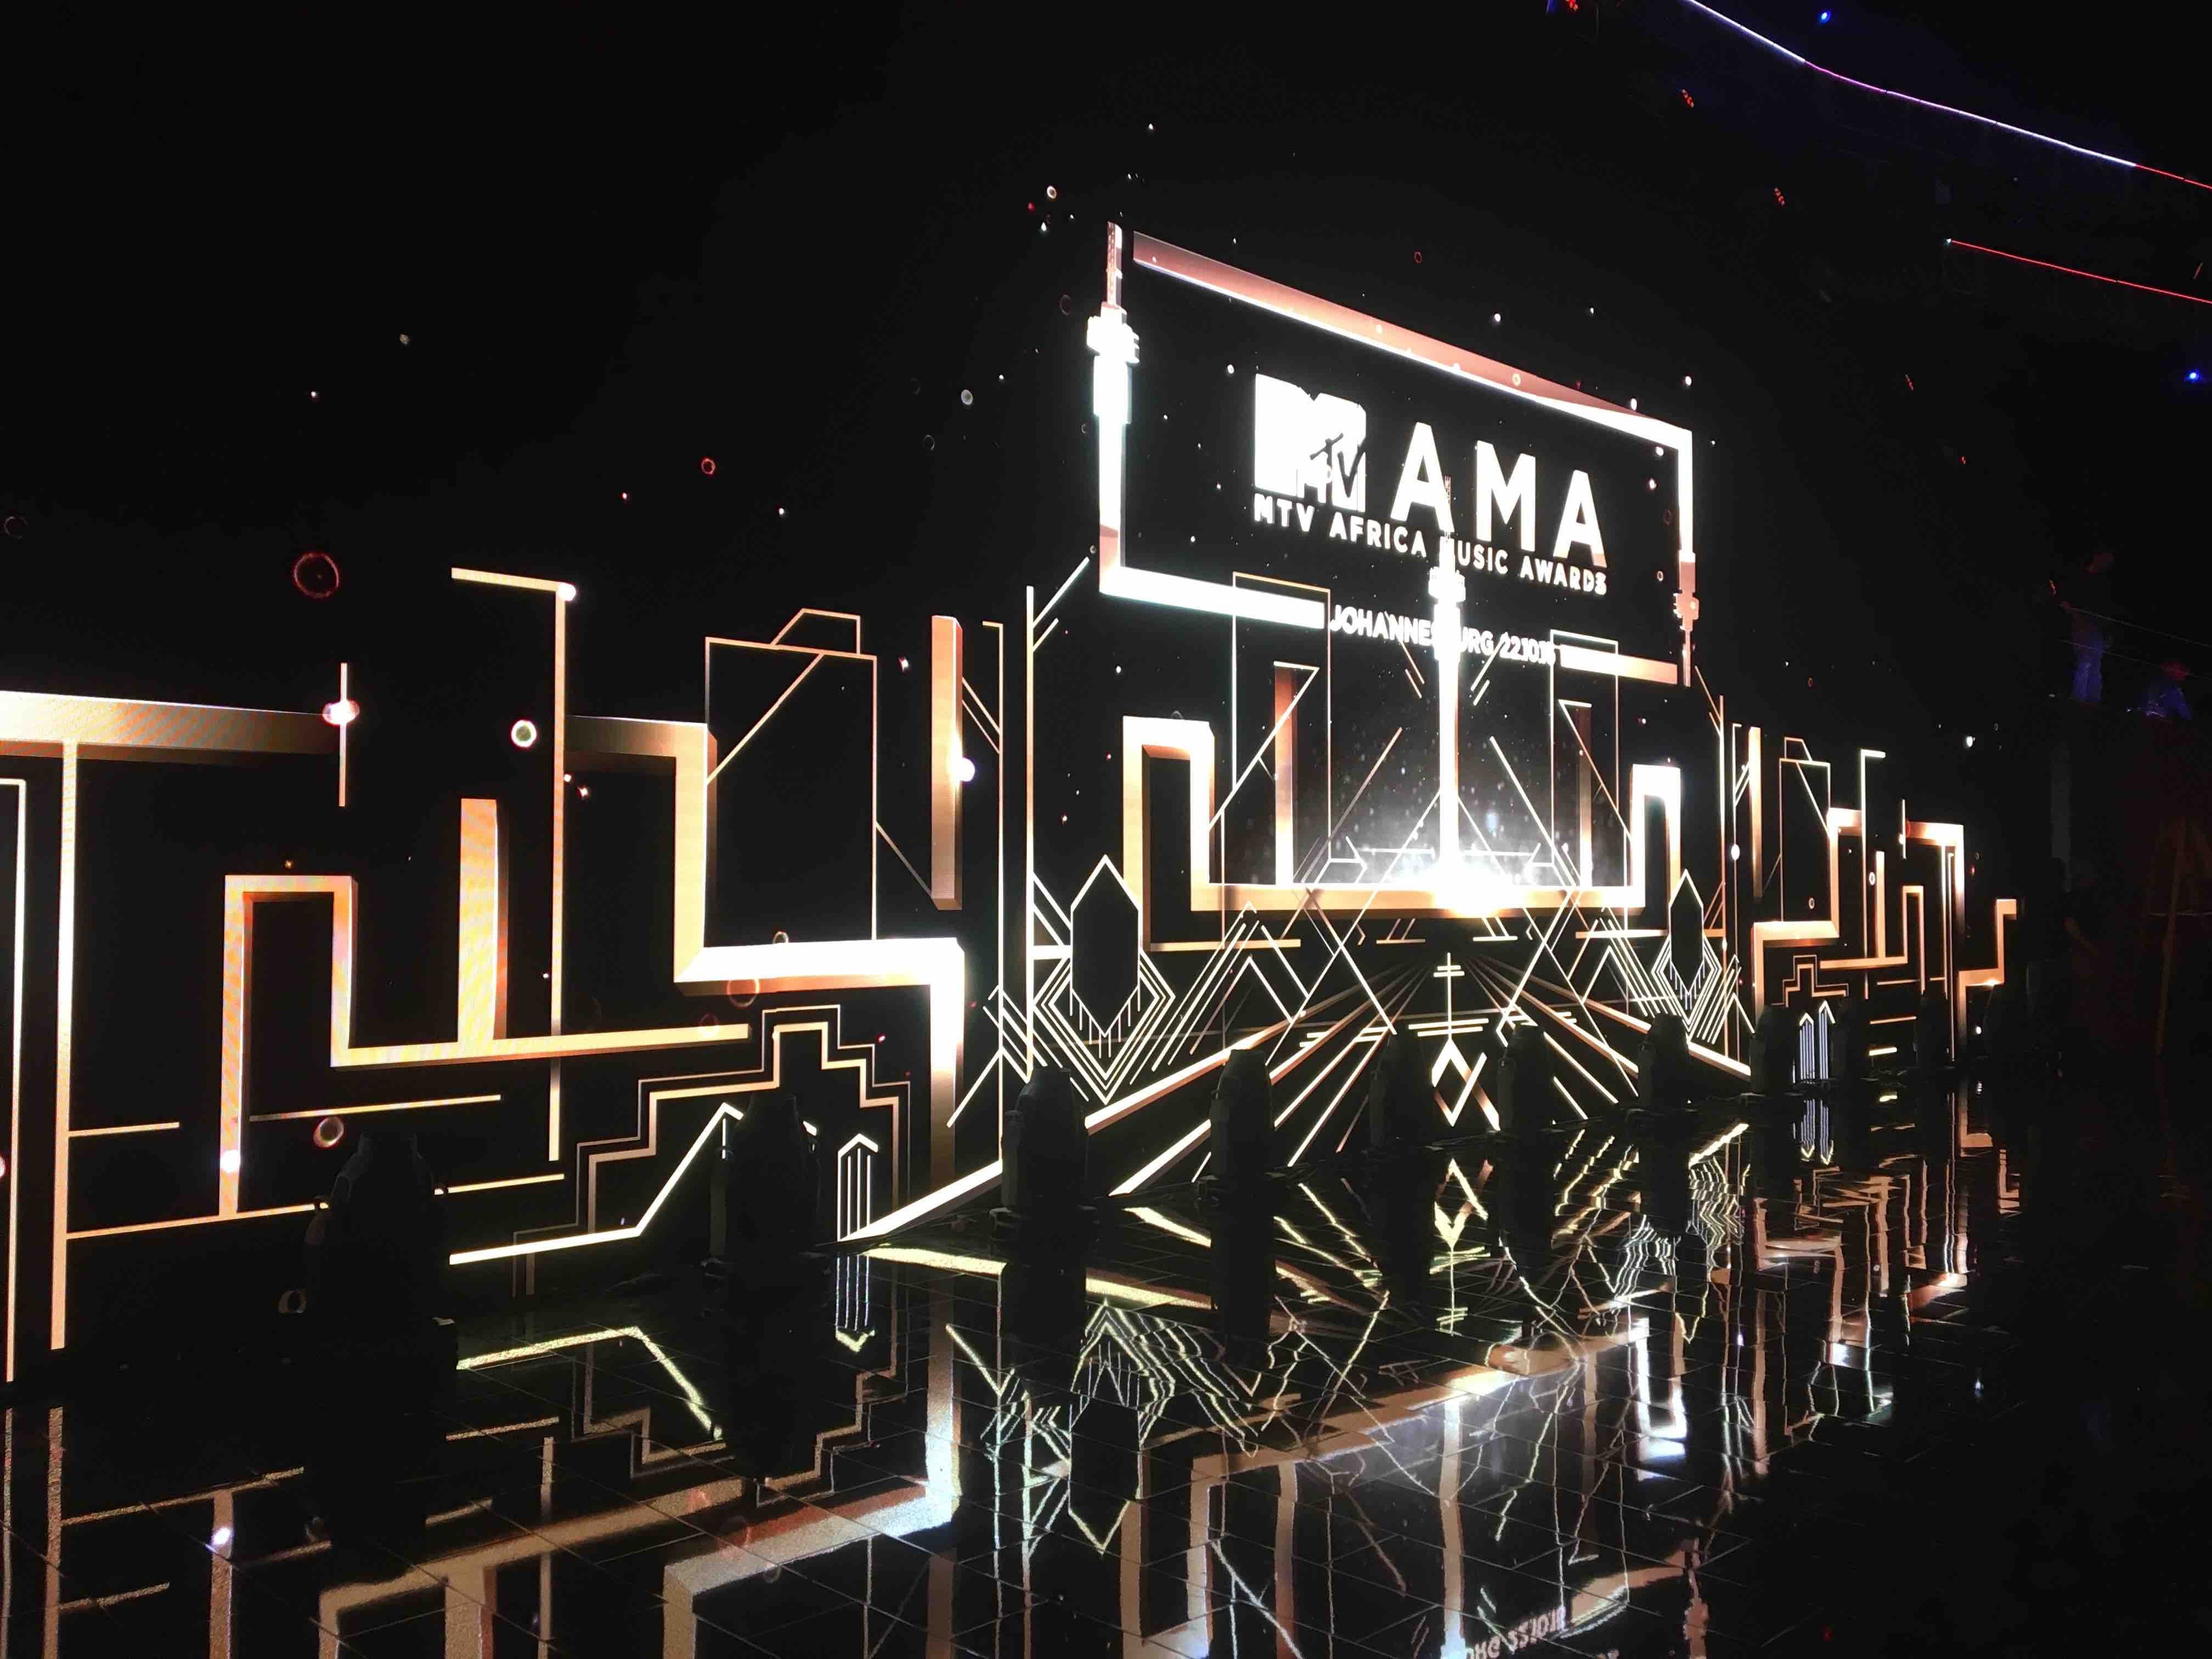 AMA broadcasting Formative bespoke stage and production design